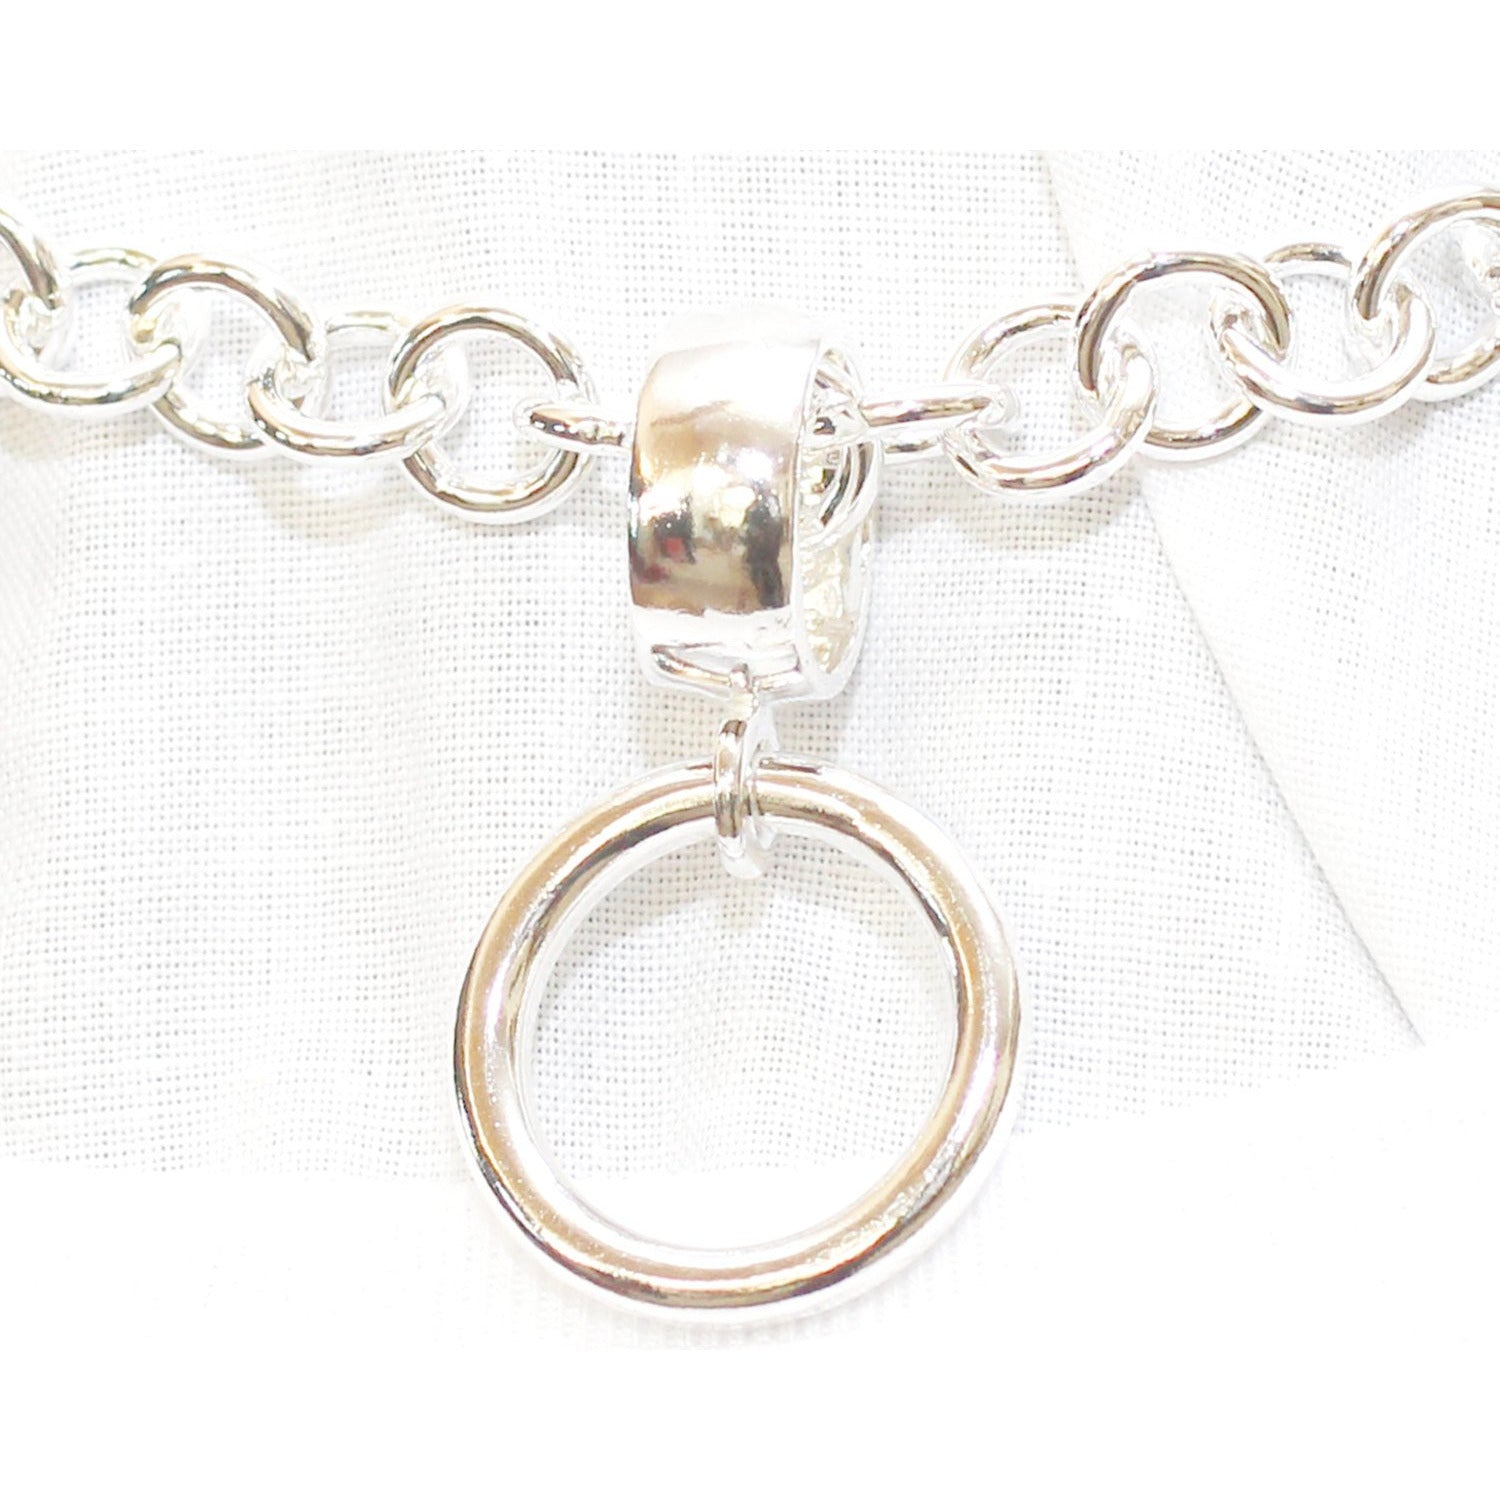 Collar O Ring, in Sterling Silver, Detachable Collar Ring, Ring Der O, Story of O ring.